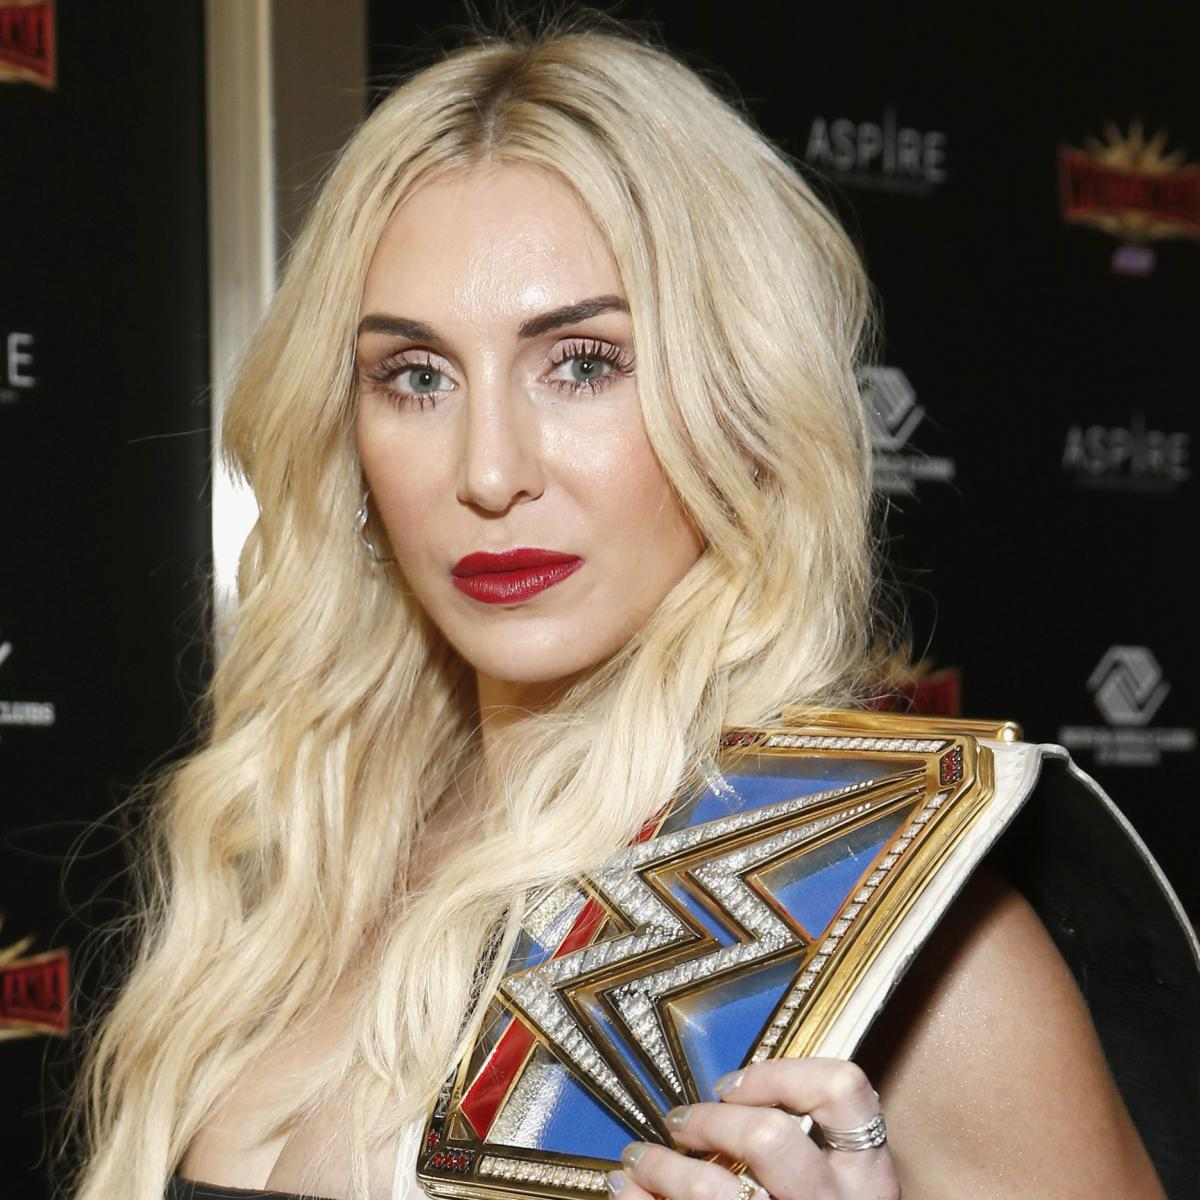 Charlotte Flair Discusses Wwe Absence Cosmetic Surgery On Twitter Bleacher Report Latest News Videos And Highlights